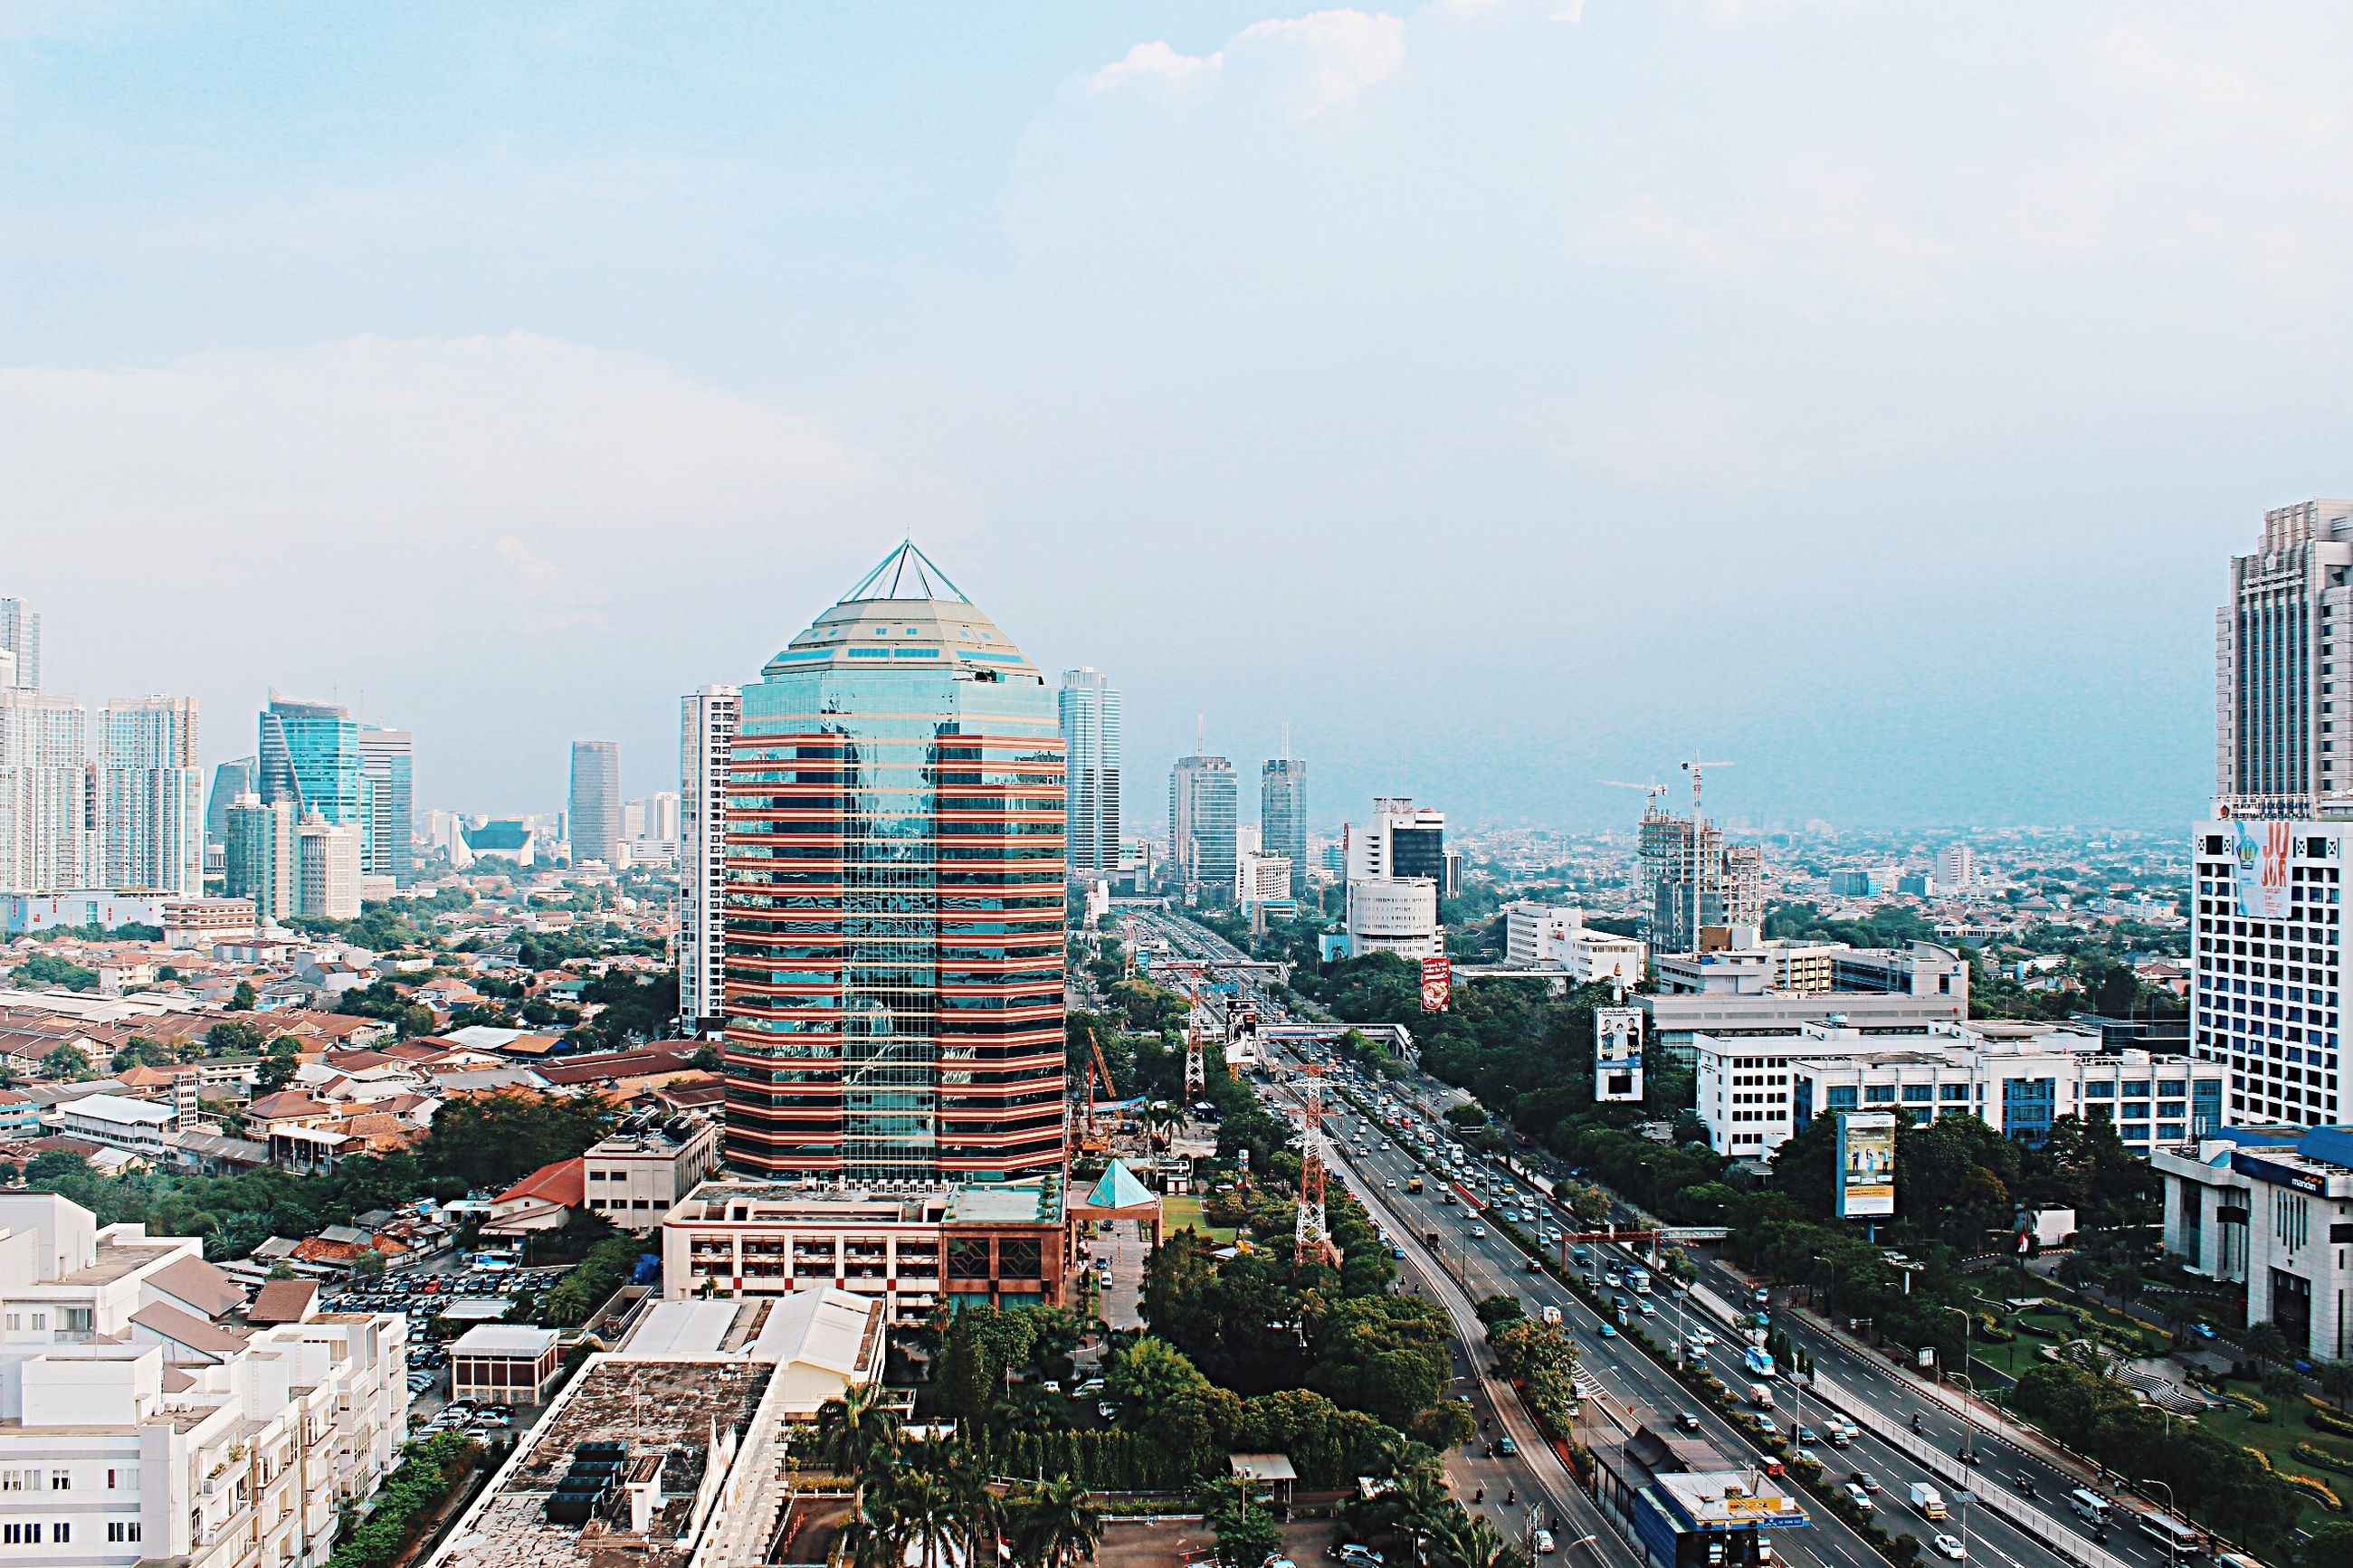 building exterior, architecture, city, built structure, cityscape, transportation, road, high angle view, street, car, sky, residential district, residential building, city life, land vehicle, residential structure, city street, building, the way forward, outdoors